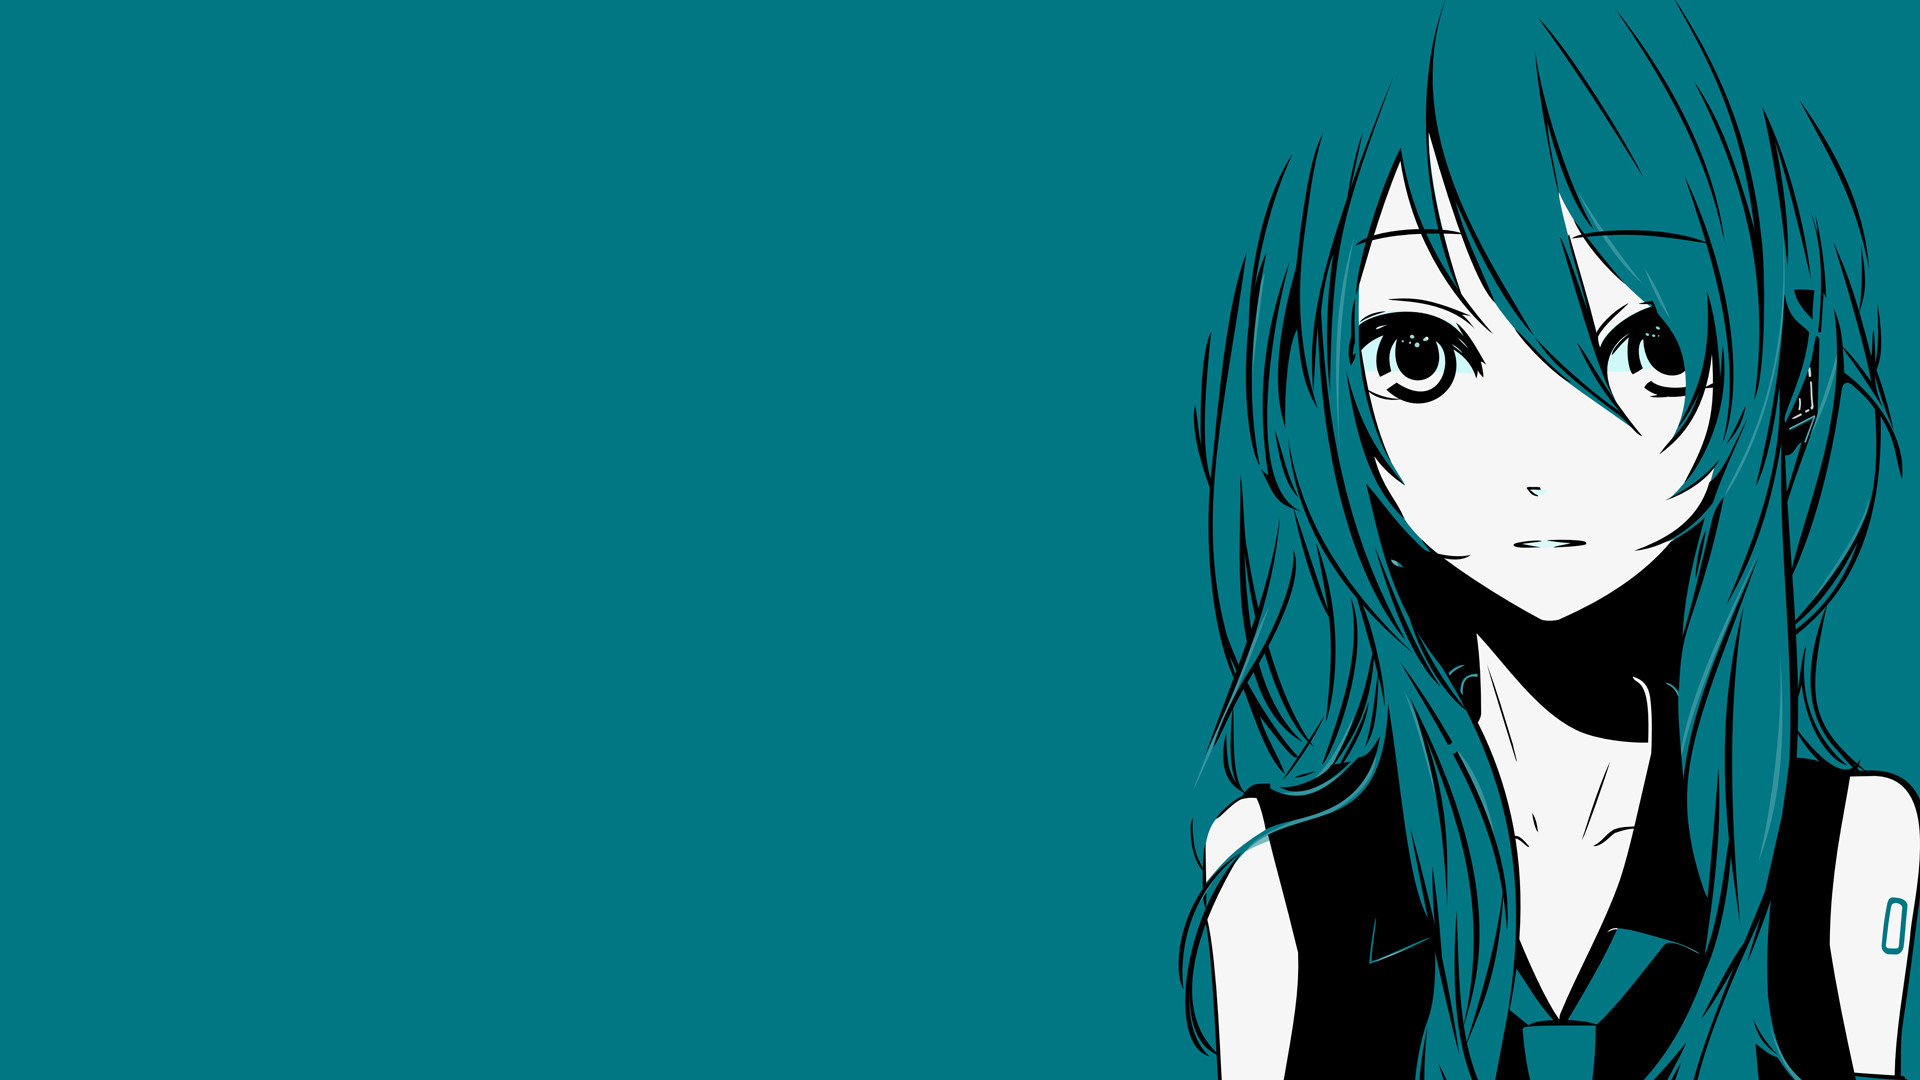 Free Download Anime Wallpapers 1920x1080 For Your Desktop